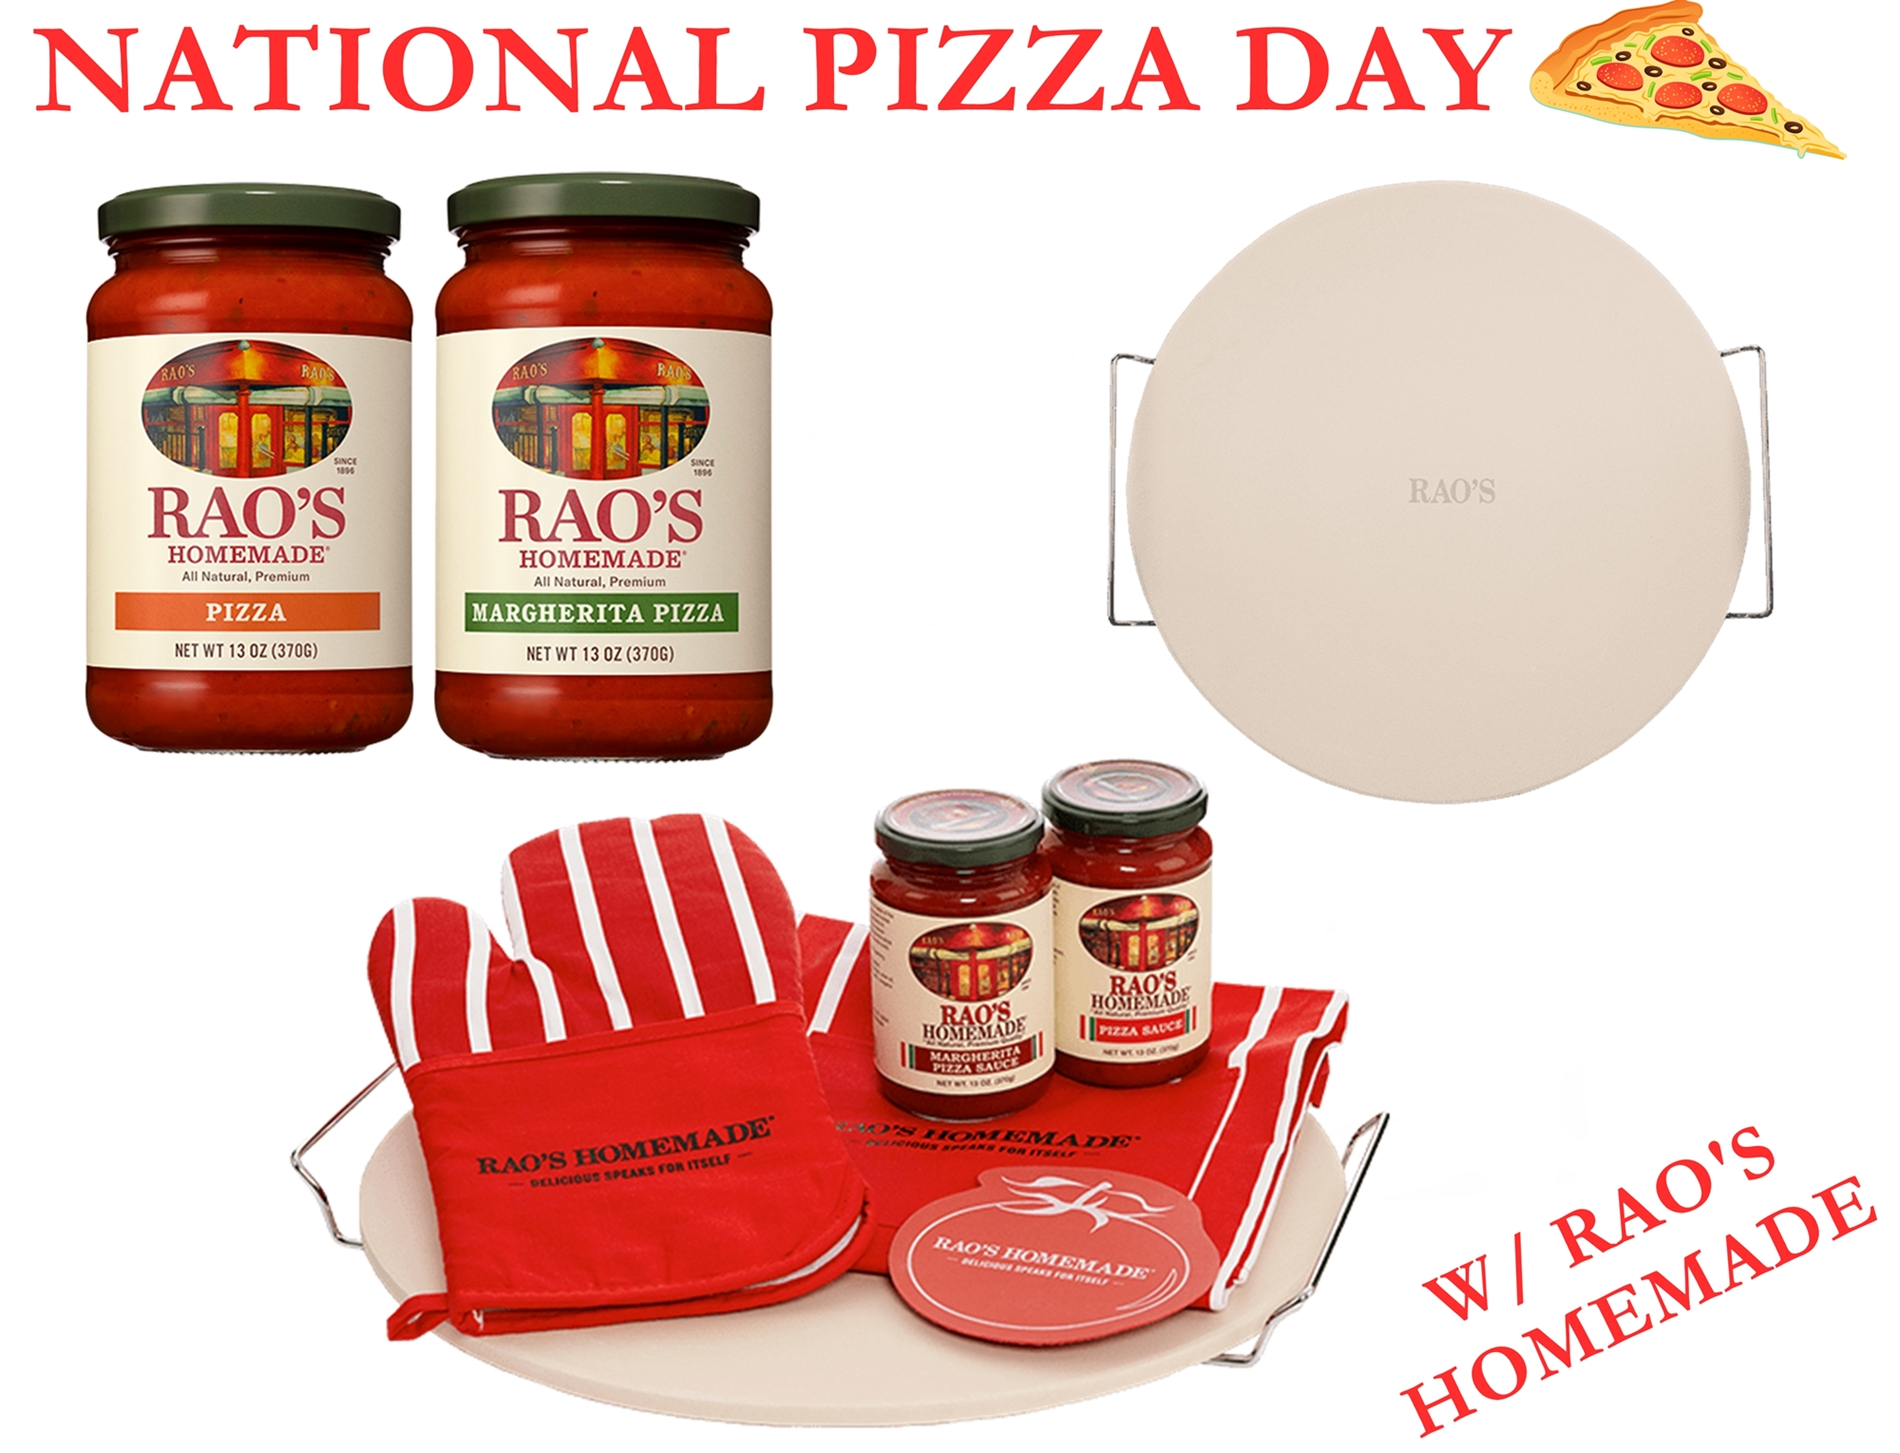 Raise a Slice to National Pizza Day with Rao's Homemade